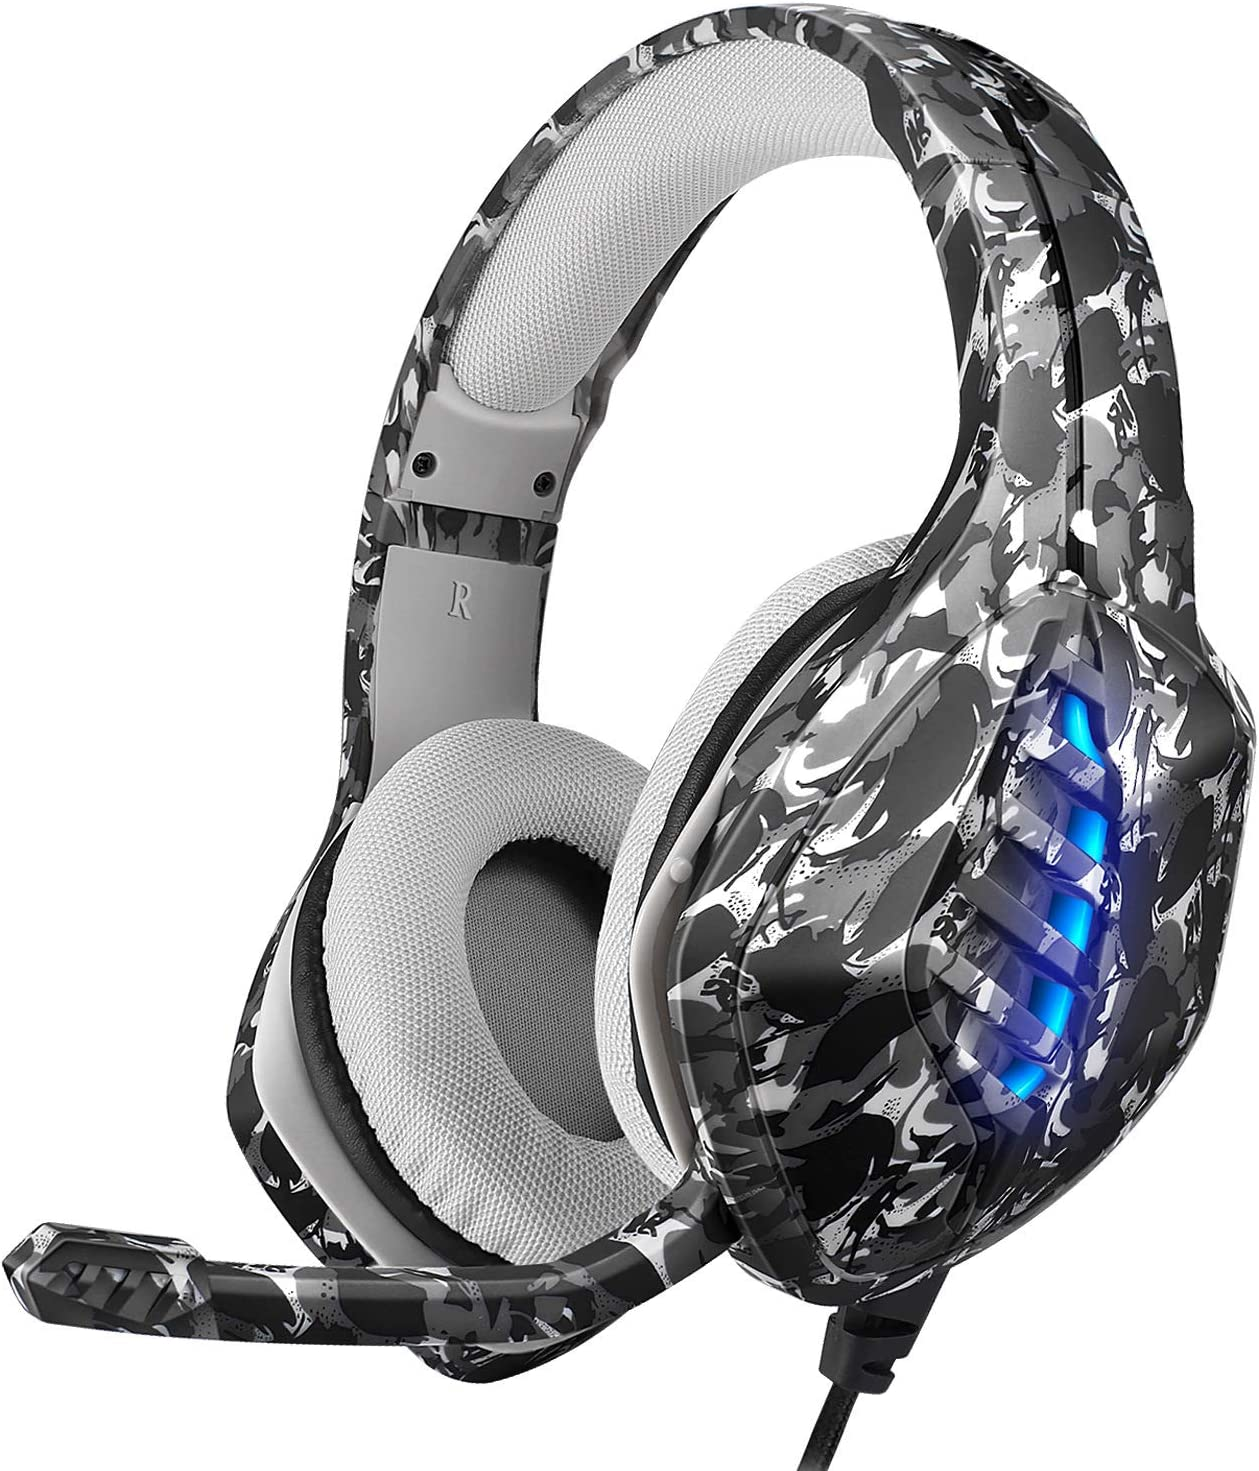 SOSOFLY Explosive Camouflage Max 88% OFF Head-Mounted Headset Lig RGB Gaming OFFicial mail order